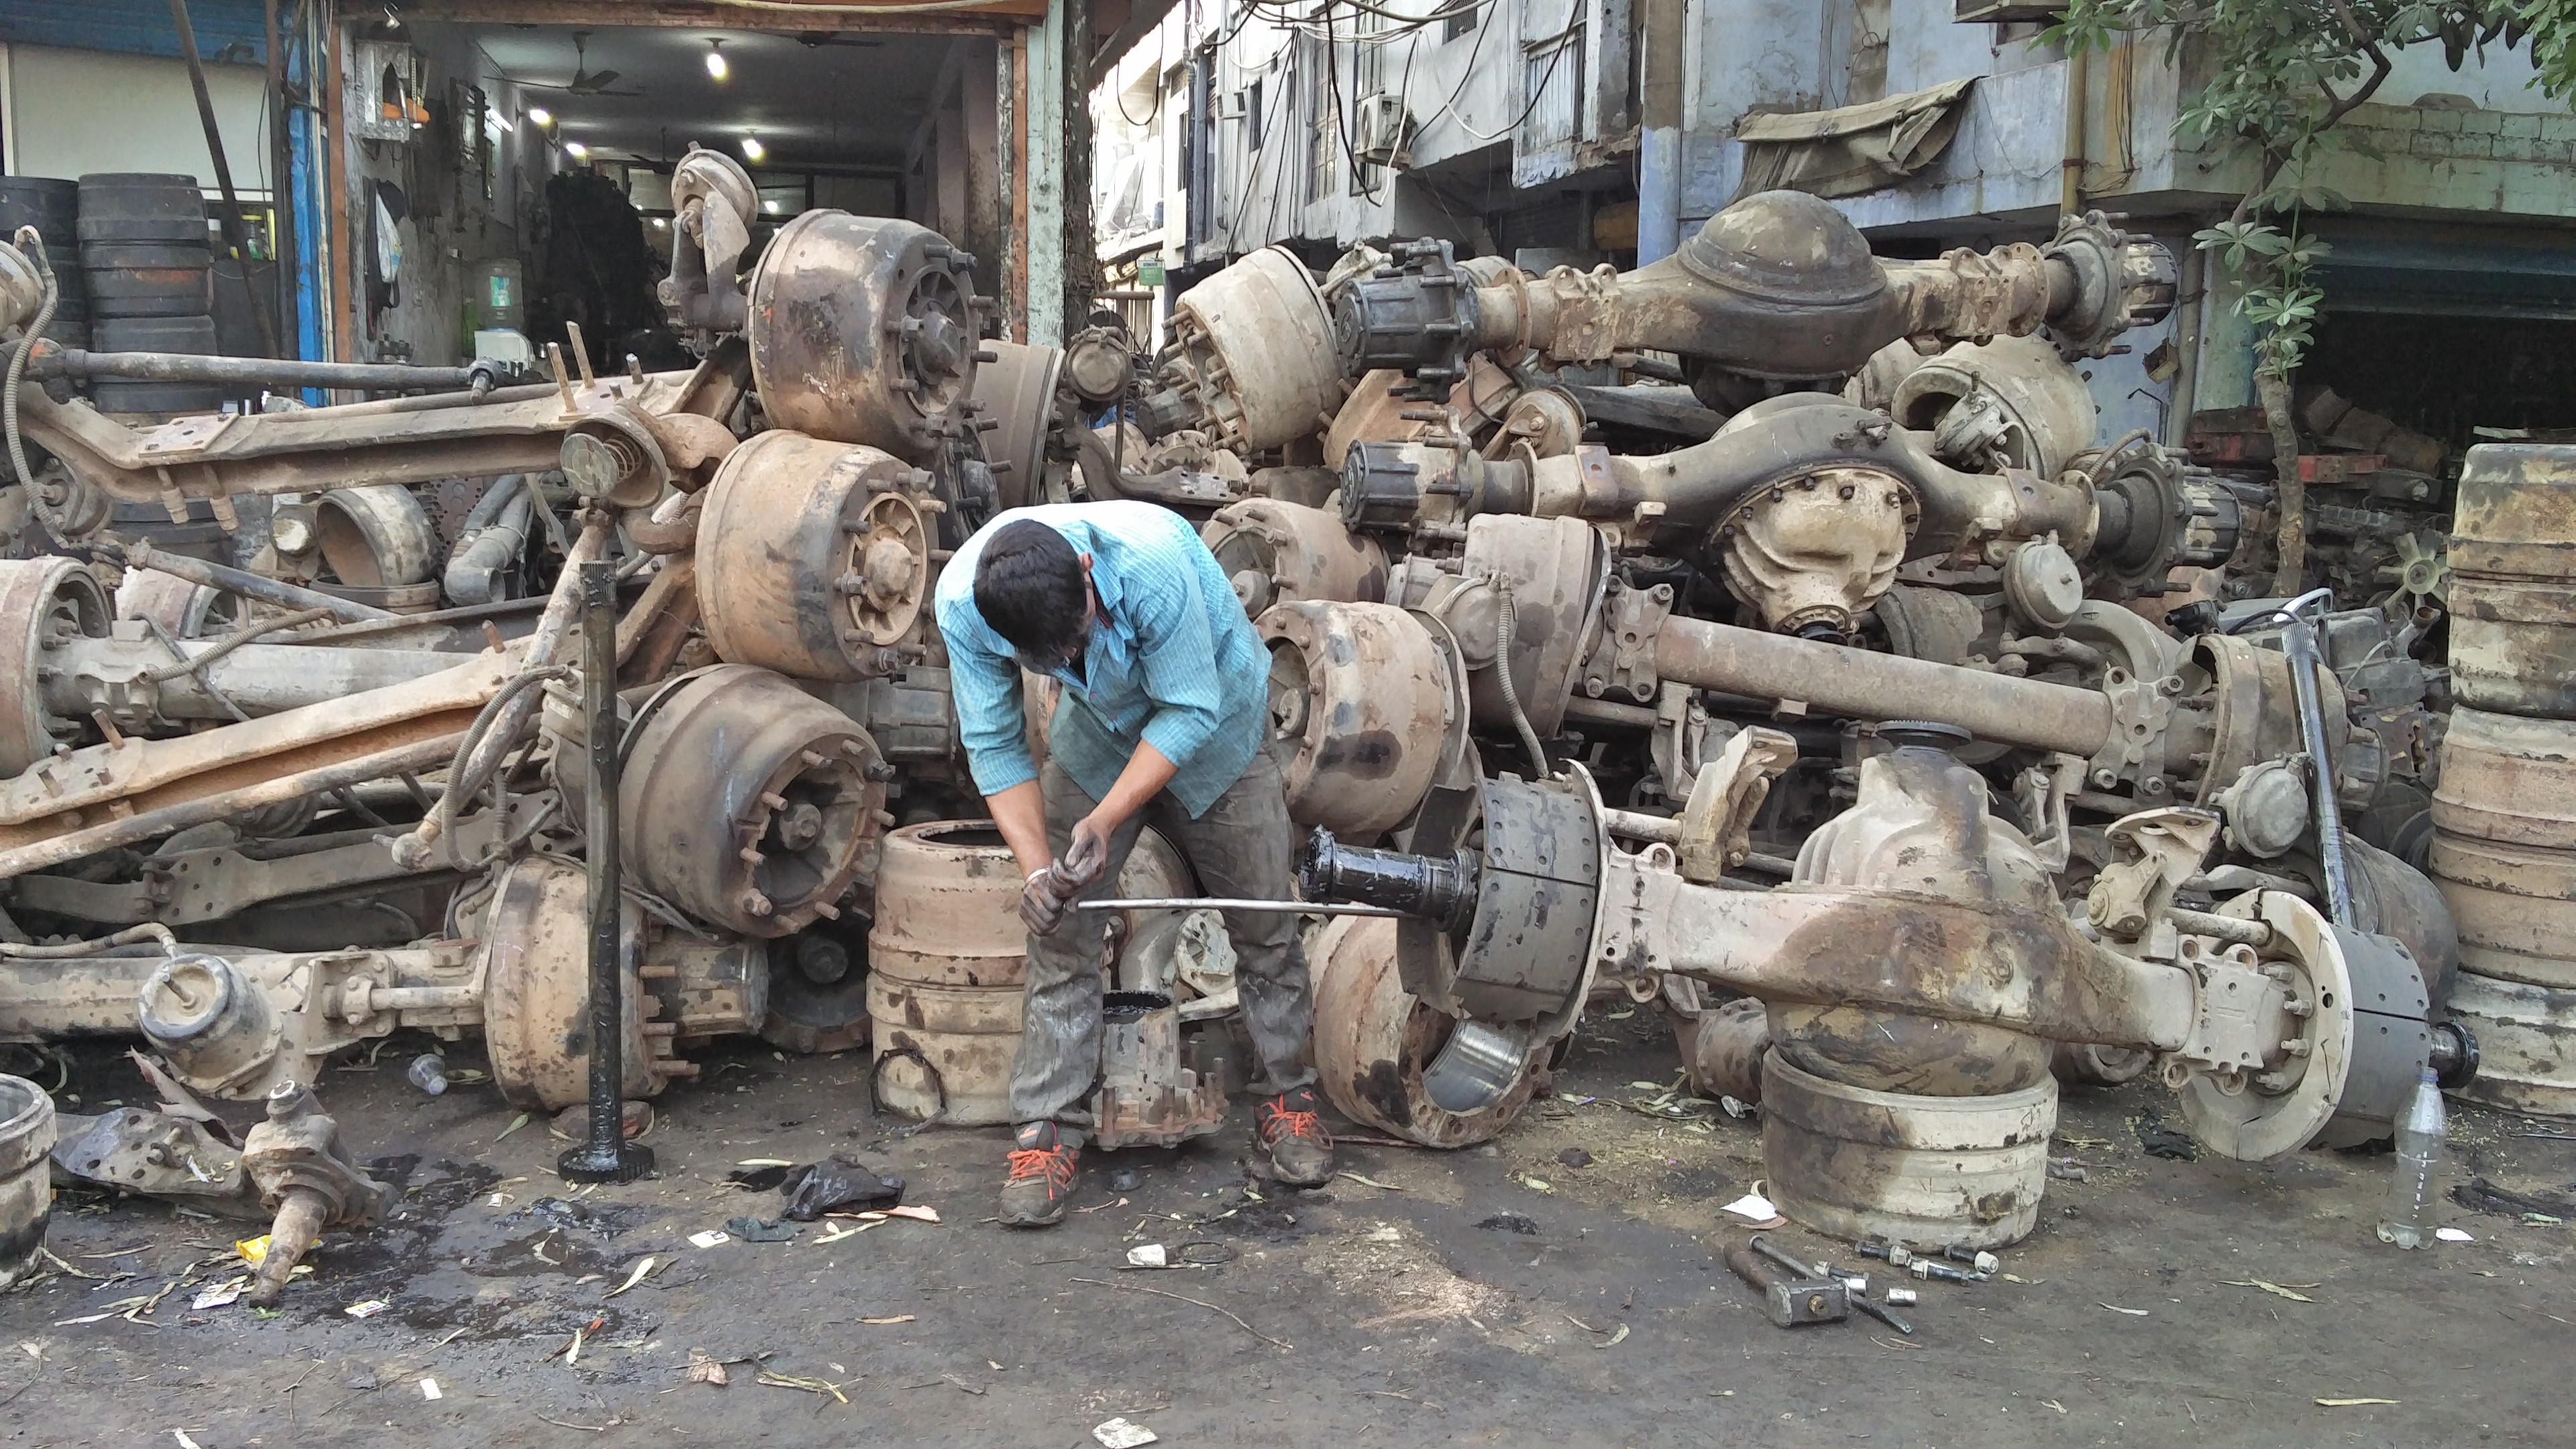 mayapuri scrap yard 2